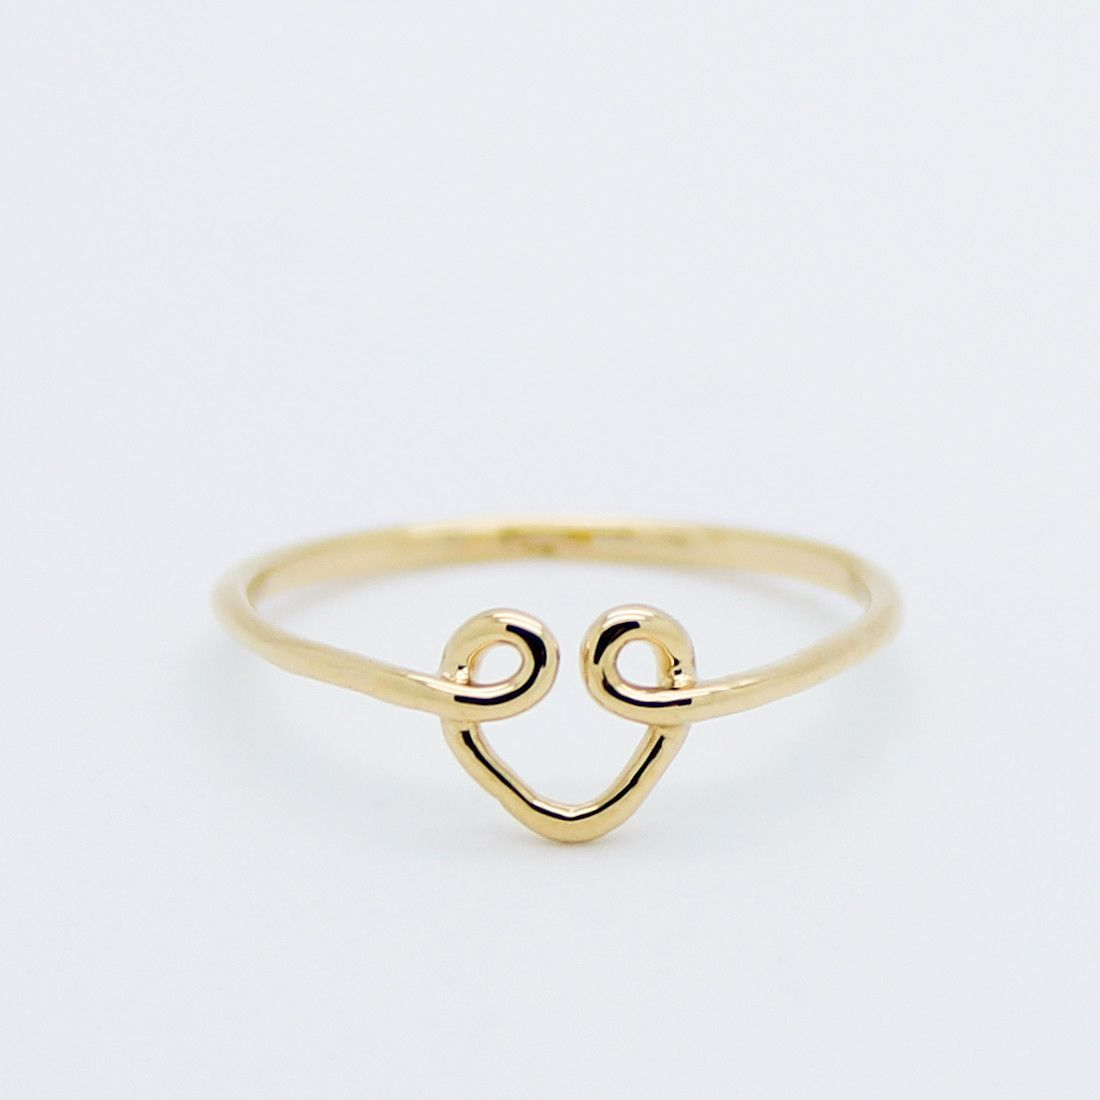 Heart wire knuckle ring | diy, crafts and gift ideas | Pinterest ...